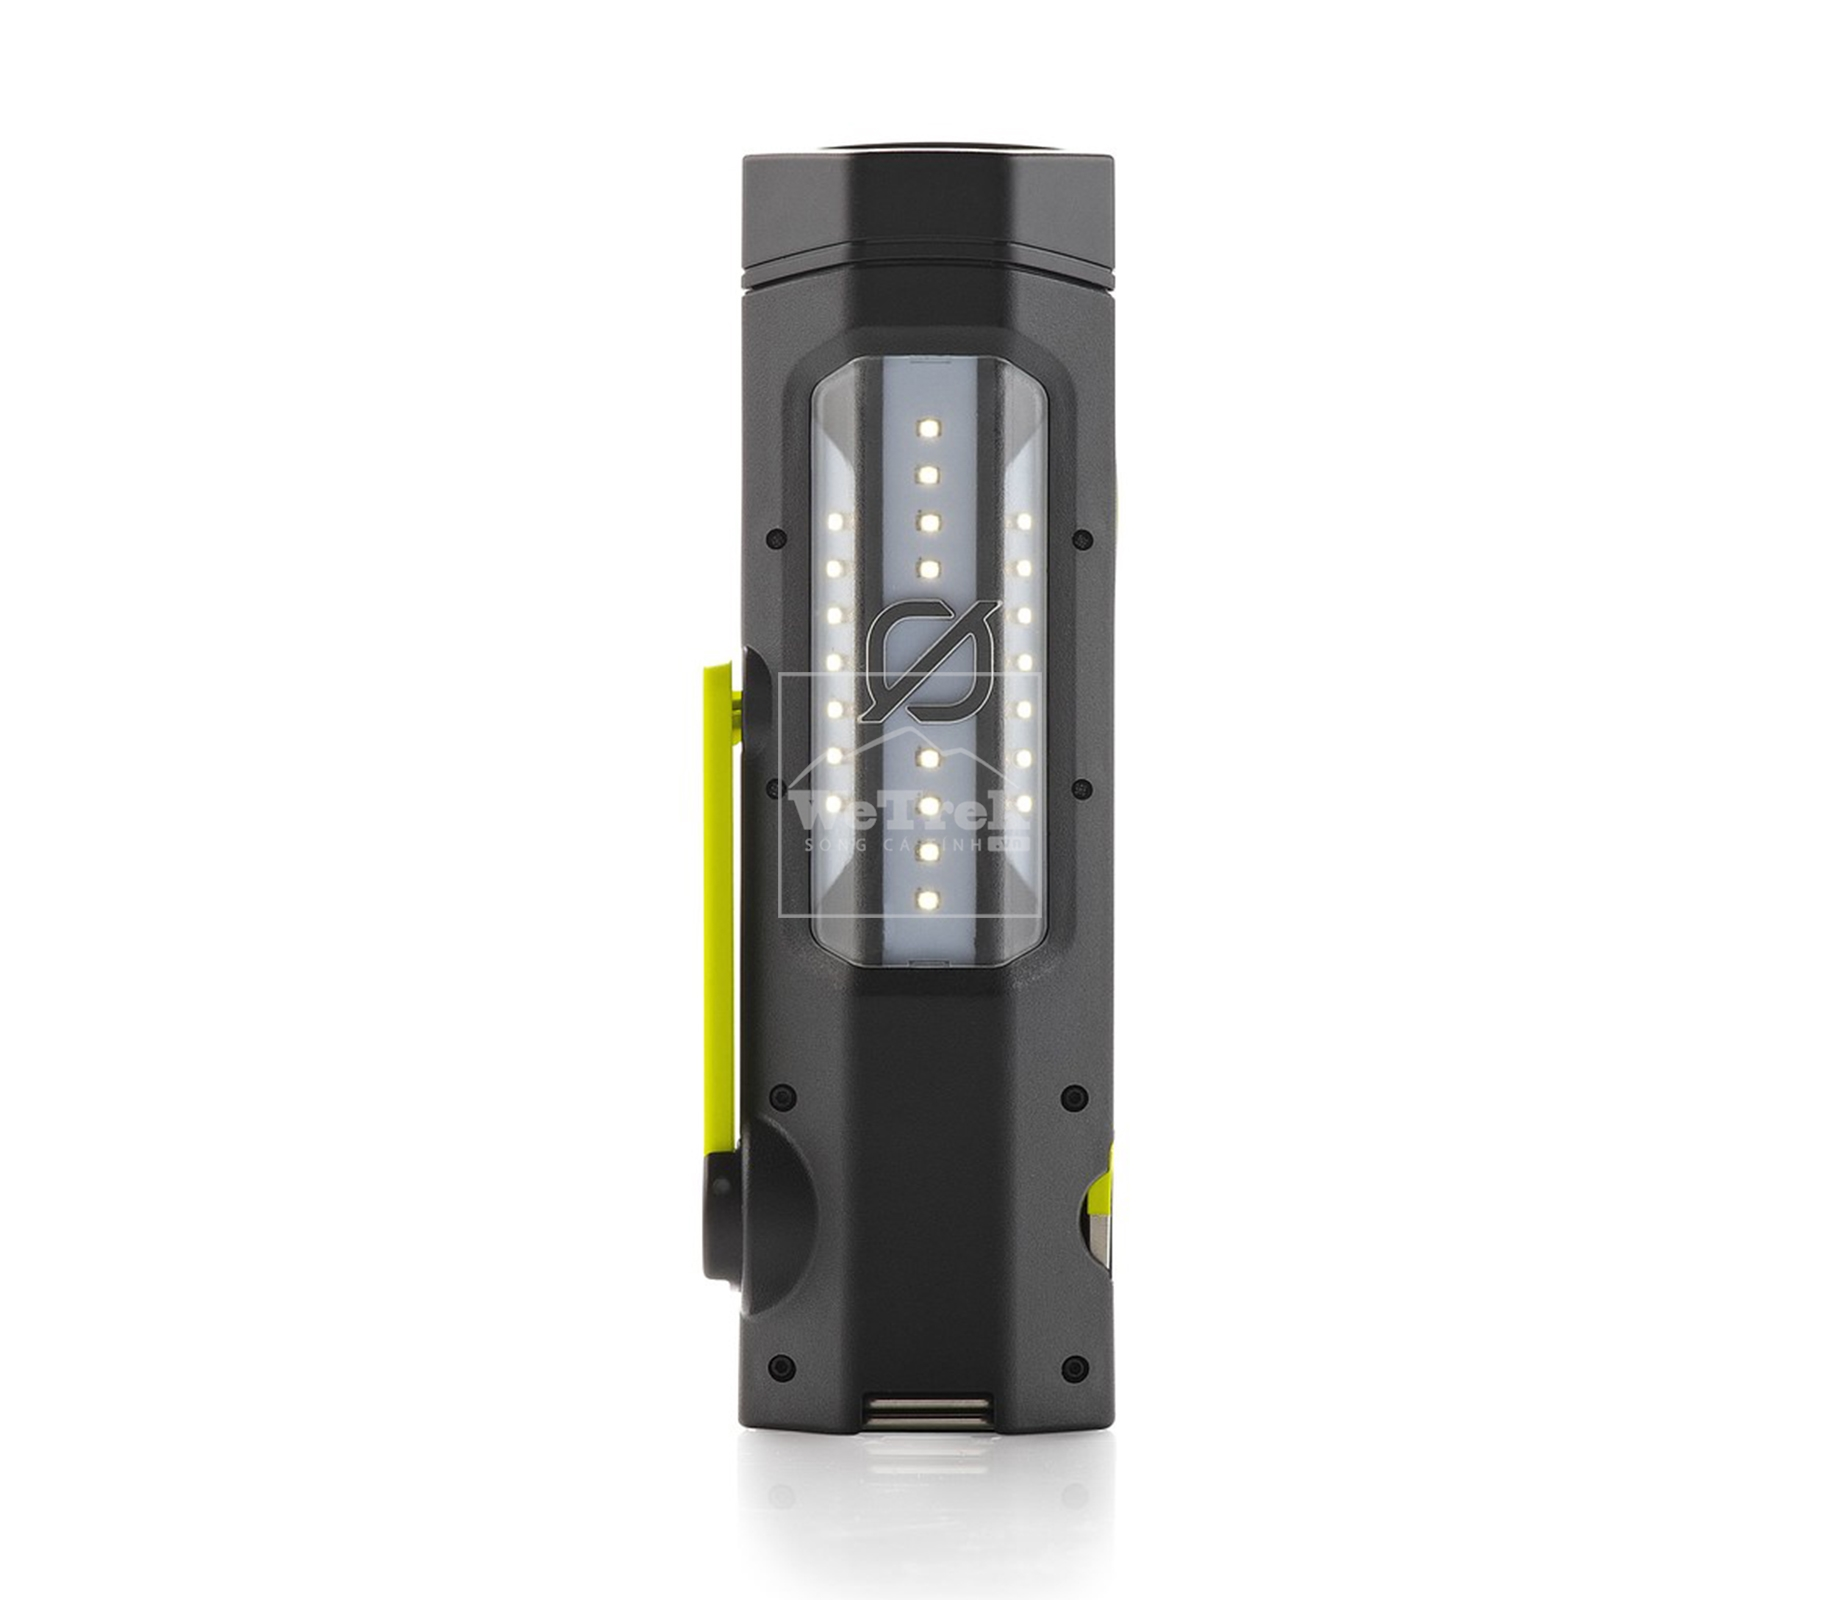 den-pin-Goal-Zero-Torch-250-Flashlight-90110-8271-wetrekvn-6.jpg